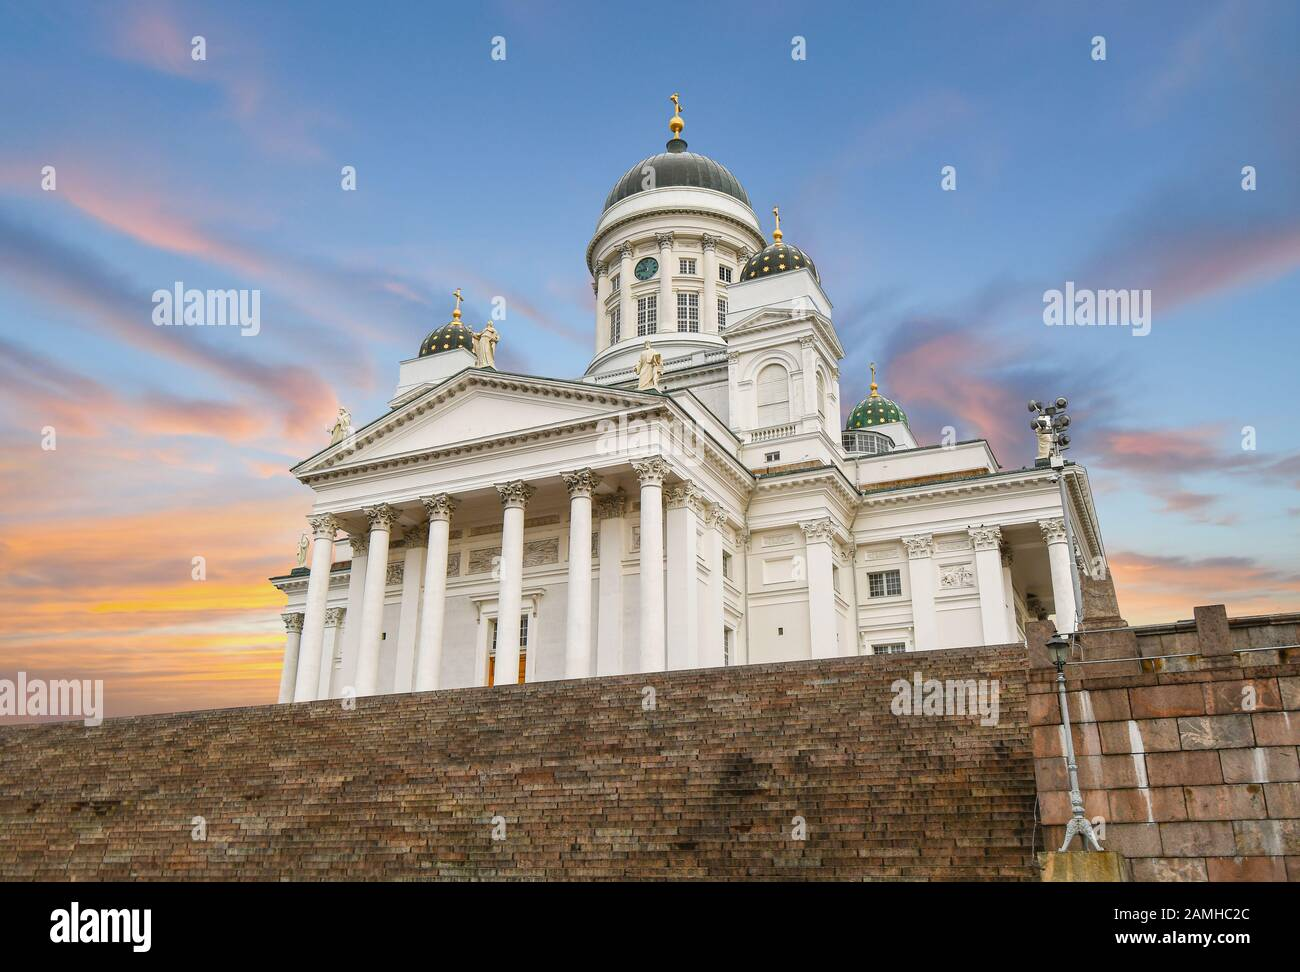 The neoclassical Helsinki Cathedral and the steps leading up to it from the Senate Square under a colorful sunset sky in Helsinki Finland. Stock Photo